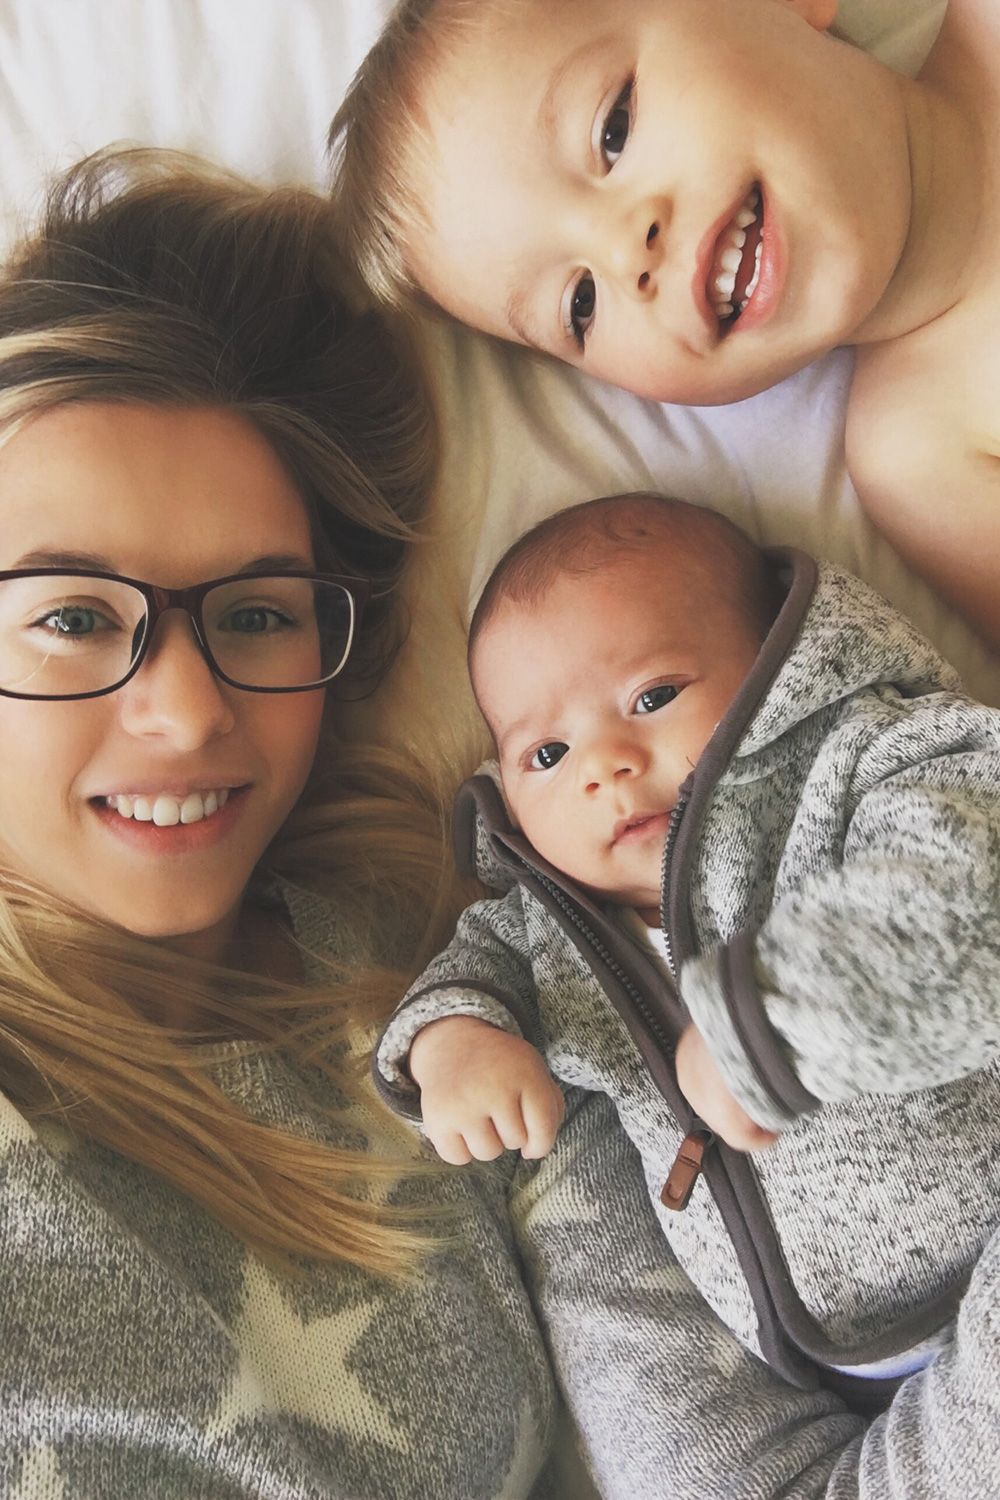 Baby Jesse Blue at 3 months old - Newborn baby boy with Mummy and brother selfie